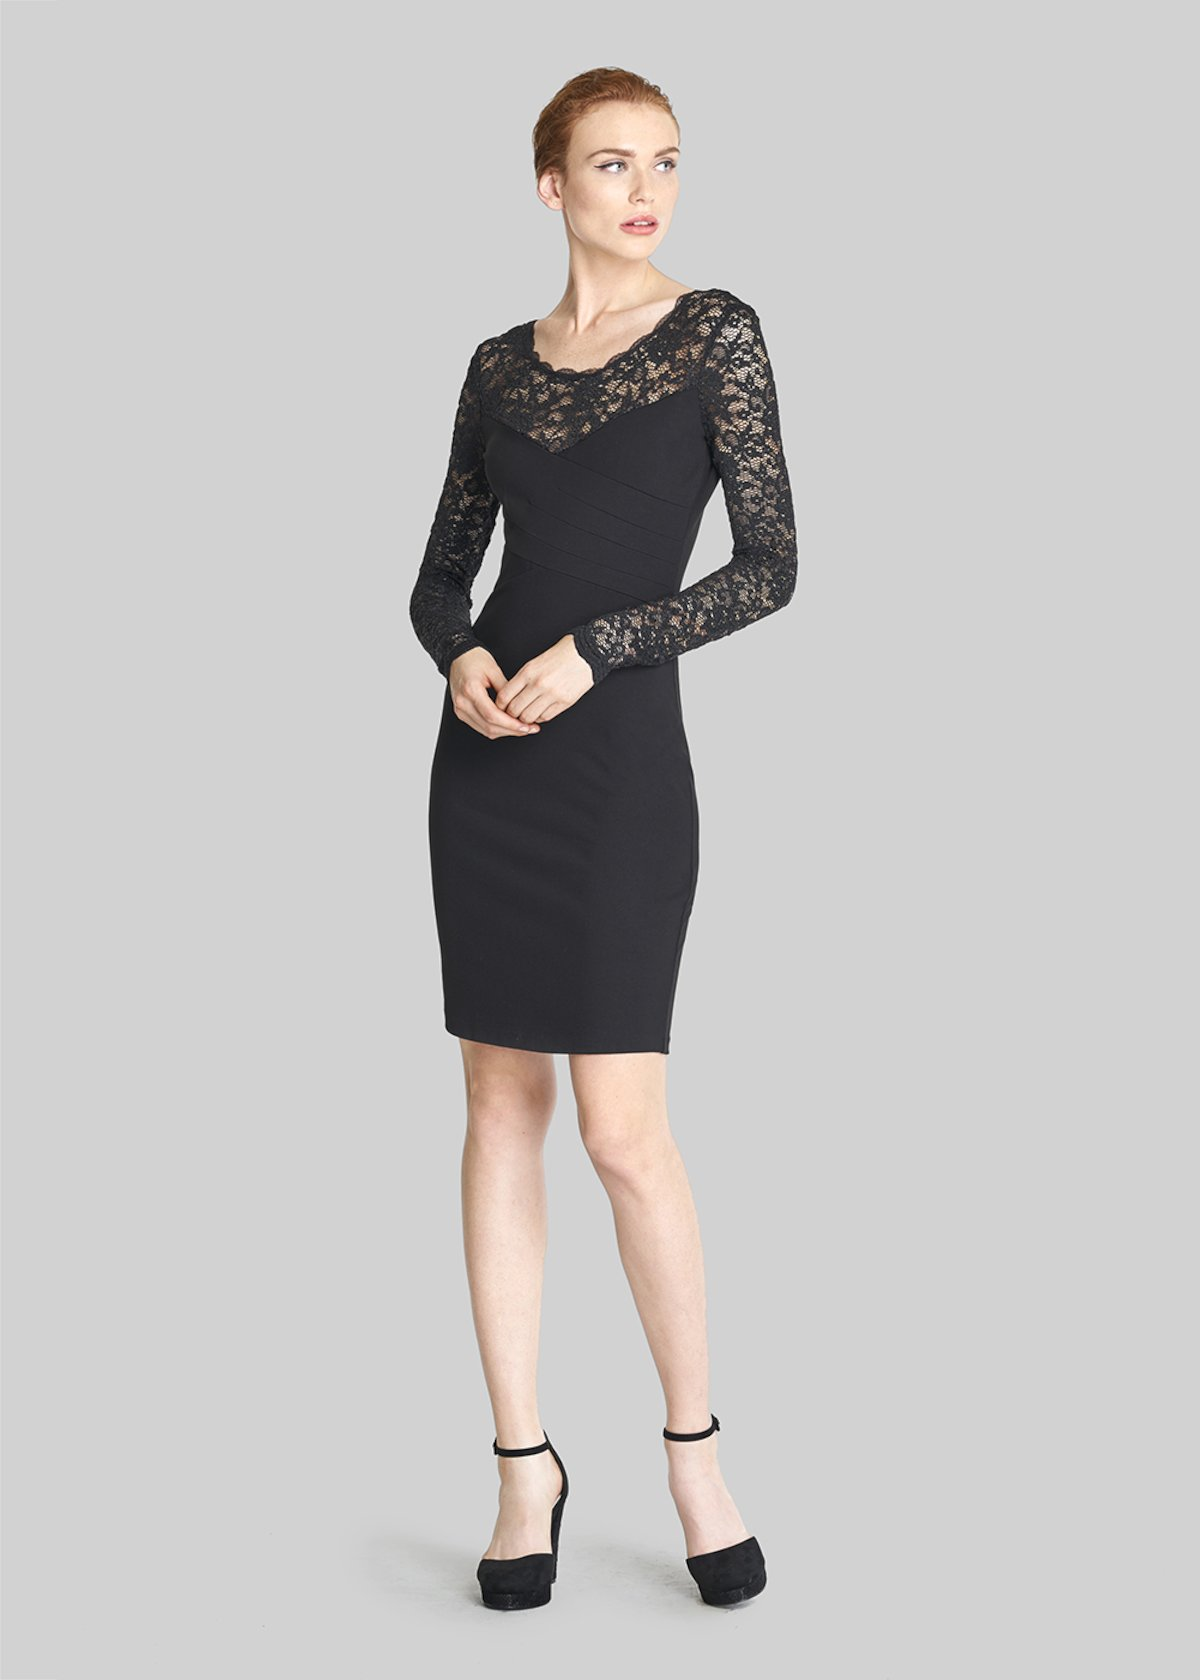 Amely dress with heart neckline and lace detail - Black